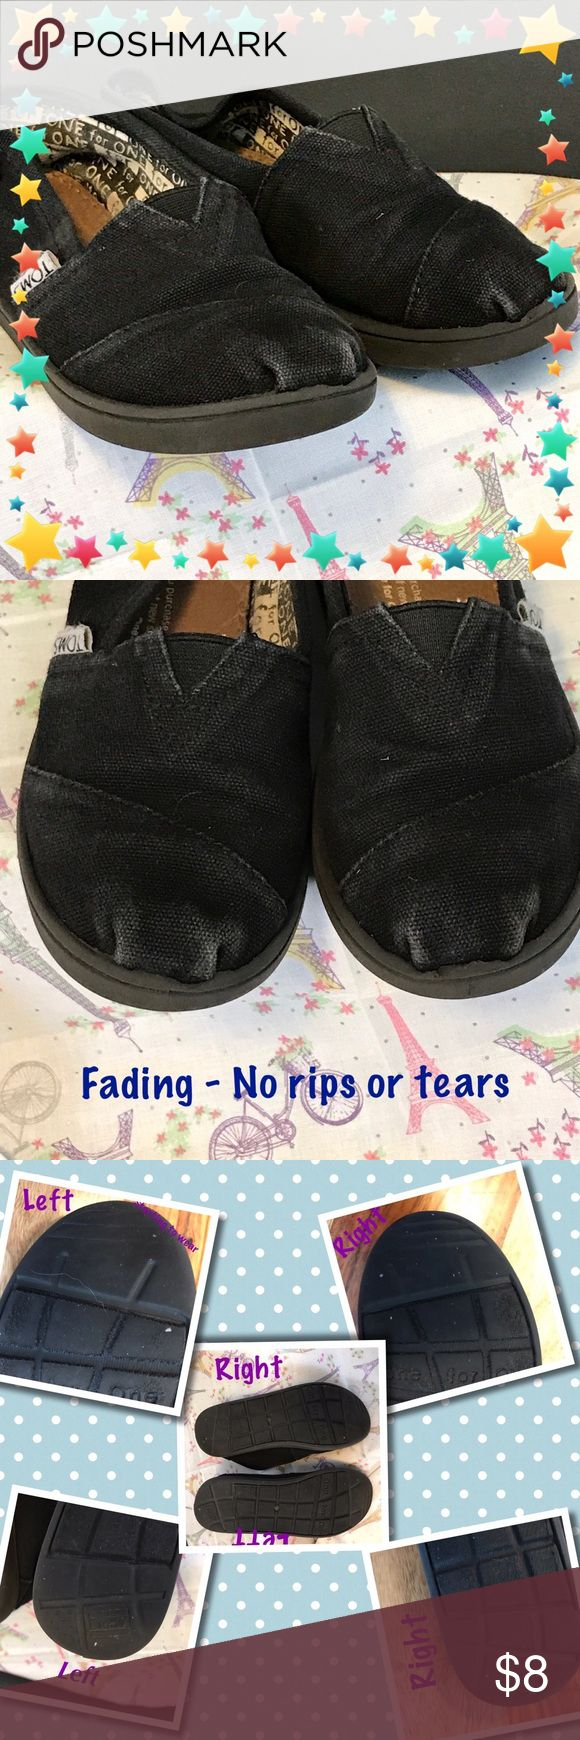 Kid's Toms Black Size - 13.5 Kid's Toms Black Size -  13.5 Pre-owned - Great Condition:  No holes or rips in the canvas, there is fading on the shoes. Smoke-Free  home.   😊Thank you for browsing my closet and have a good day!❤  ***************************************************** 💖 bundle & save 🌀 offers welcome 📦 fast shipping TOMS Shoes Sneakers